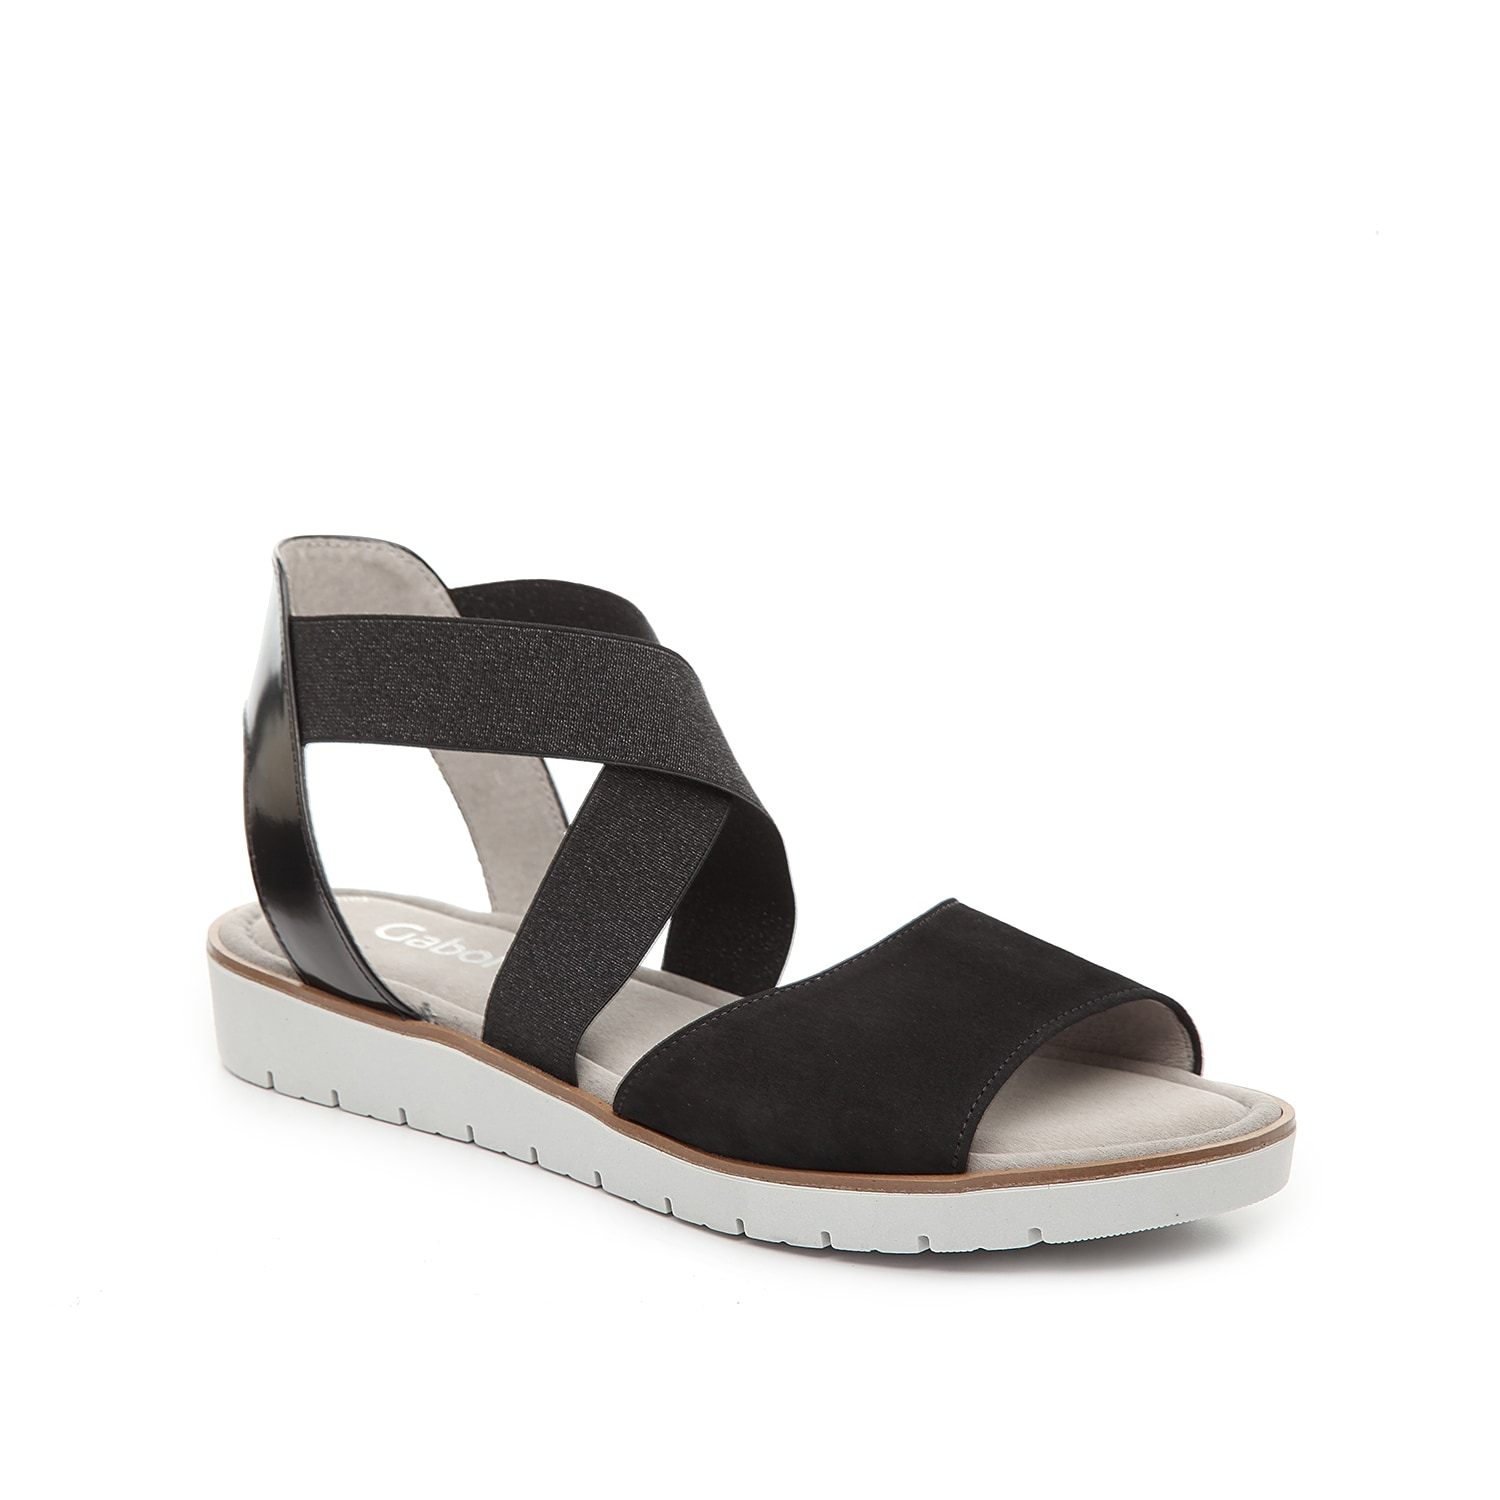 Find the perfect balance of sporty and sweet with the 65572 sandal from Gabor. Colorblock styling and a patent heel strap will add trendy style to your casual look.